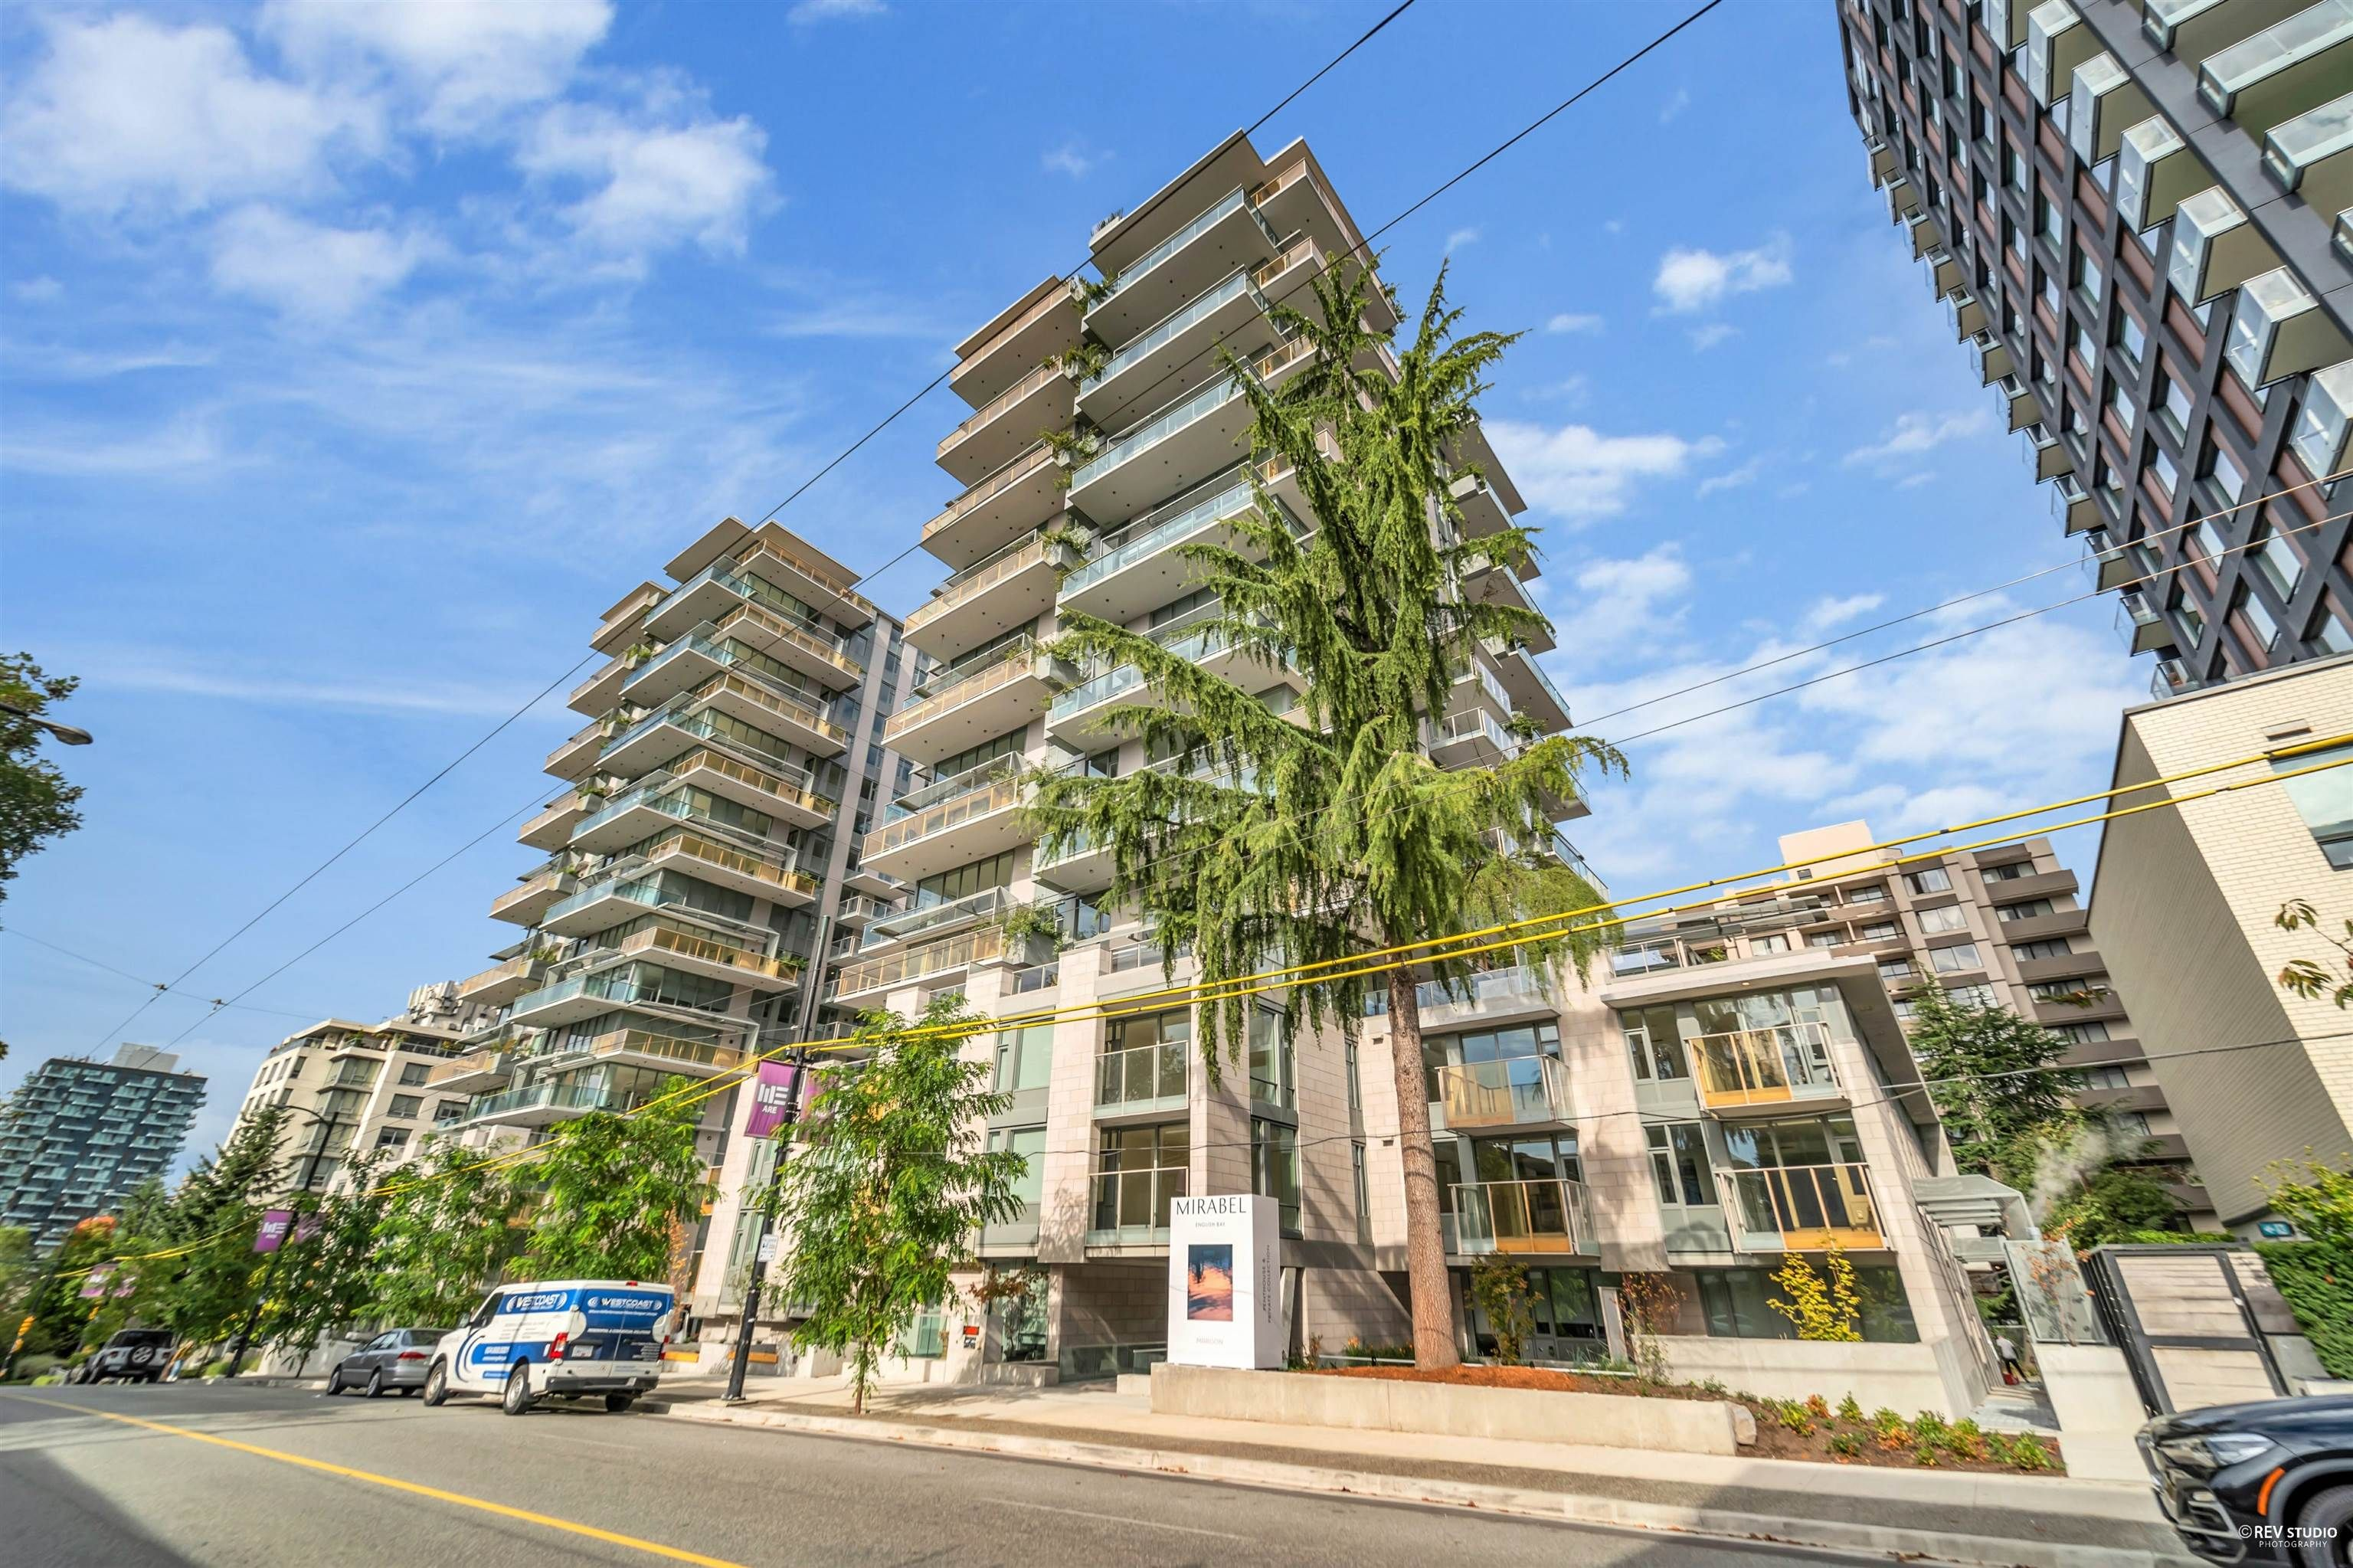 """Main Photo: 304 1365 DAVIE Street in Vancouver: West End VW Condo for sale in """"MIRABEL"""" (Vancouver West)  : MLS®# R2625144"""